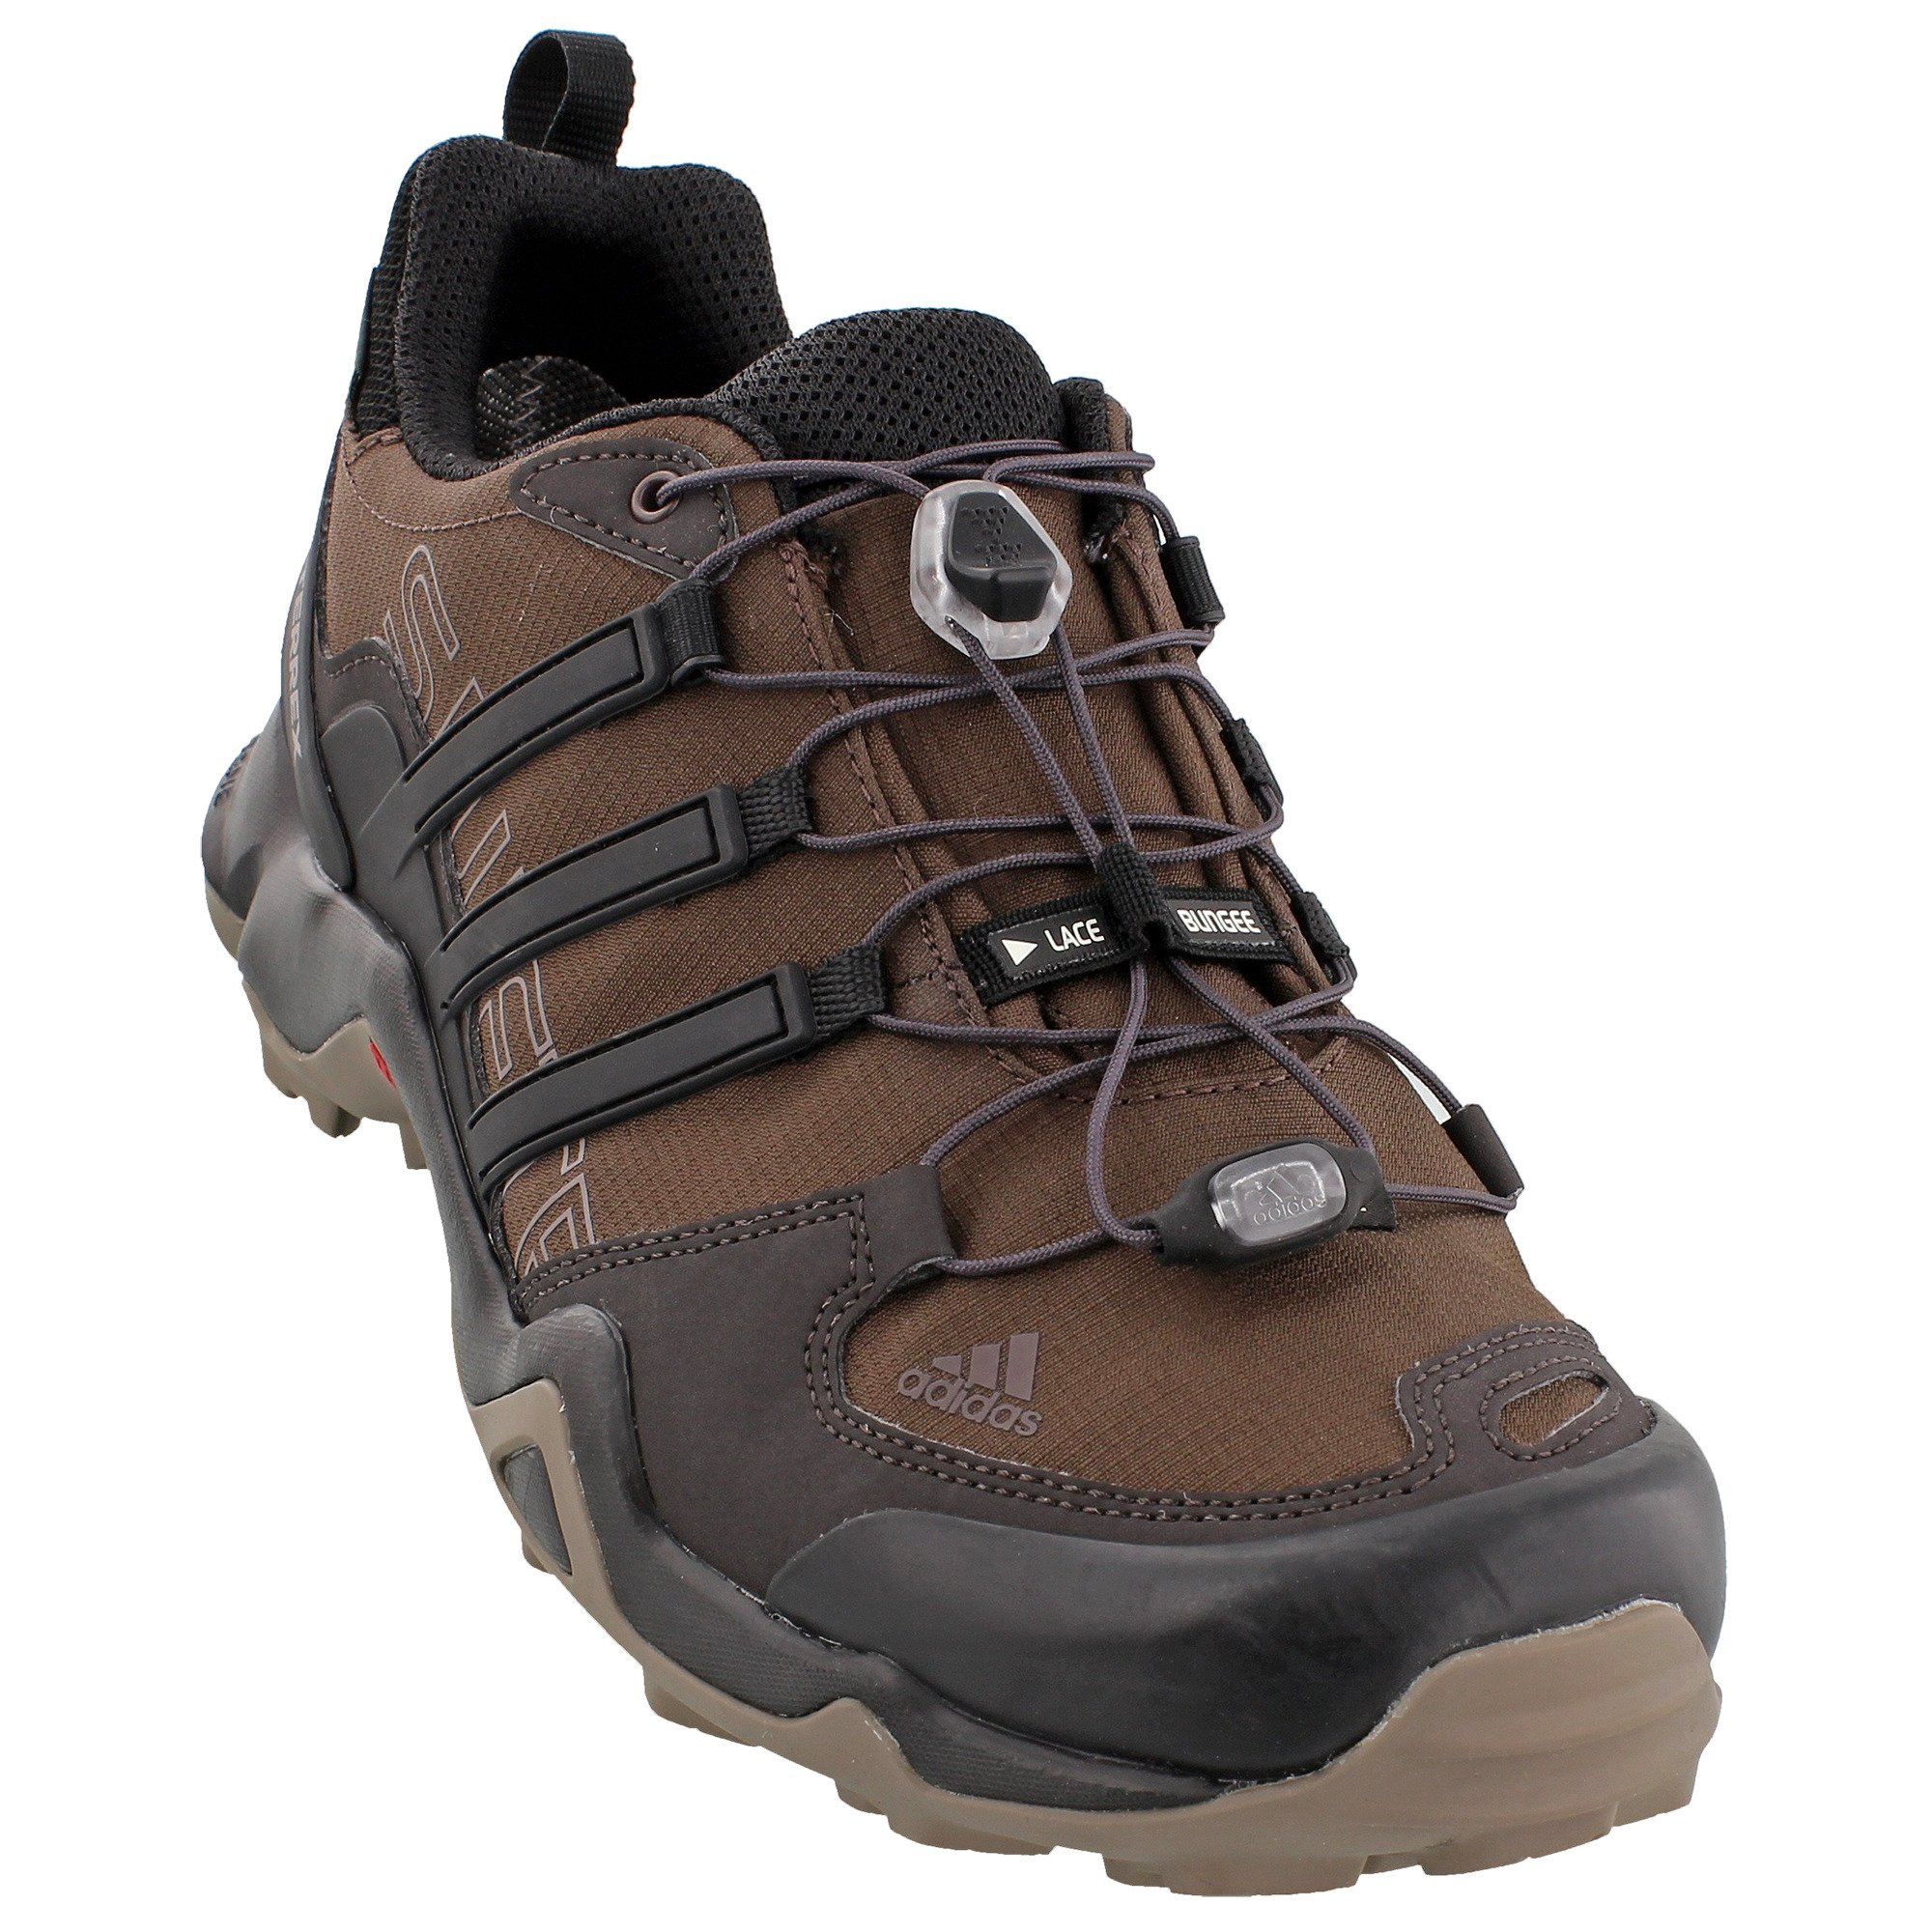 adidas outdoor Men's Terrex Swift R GTX Brown/Black/Simple Brown Hiking Shoes - 9.5 D(M) US by adidas